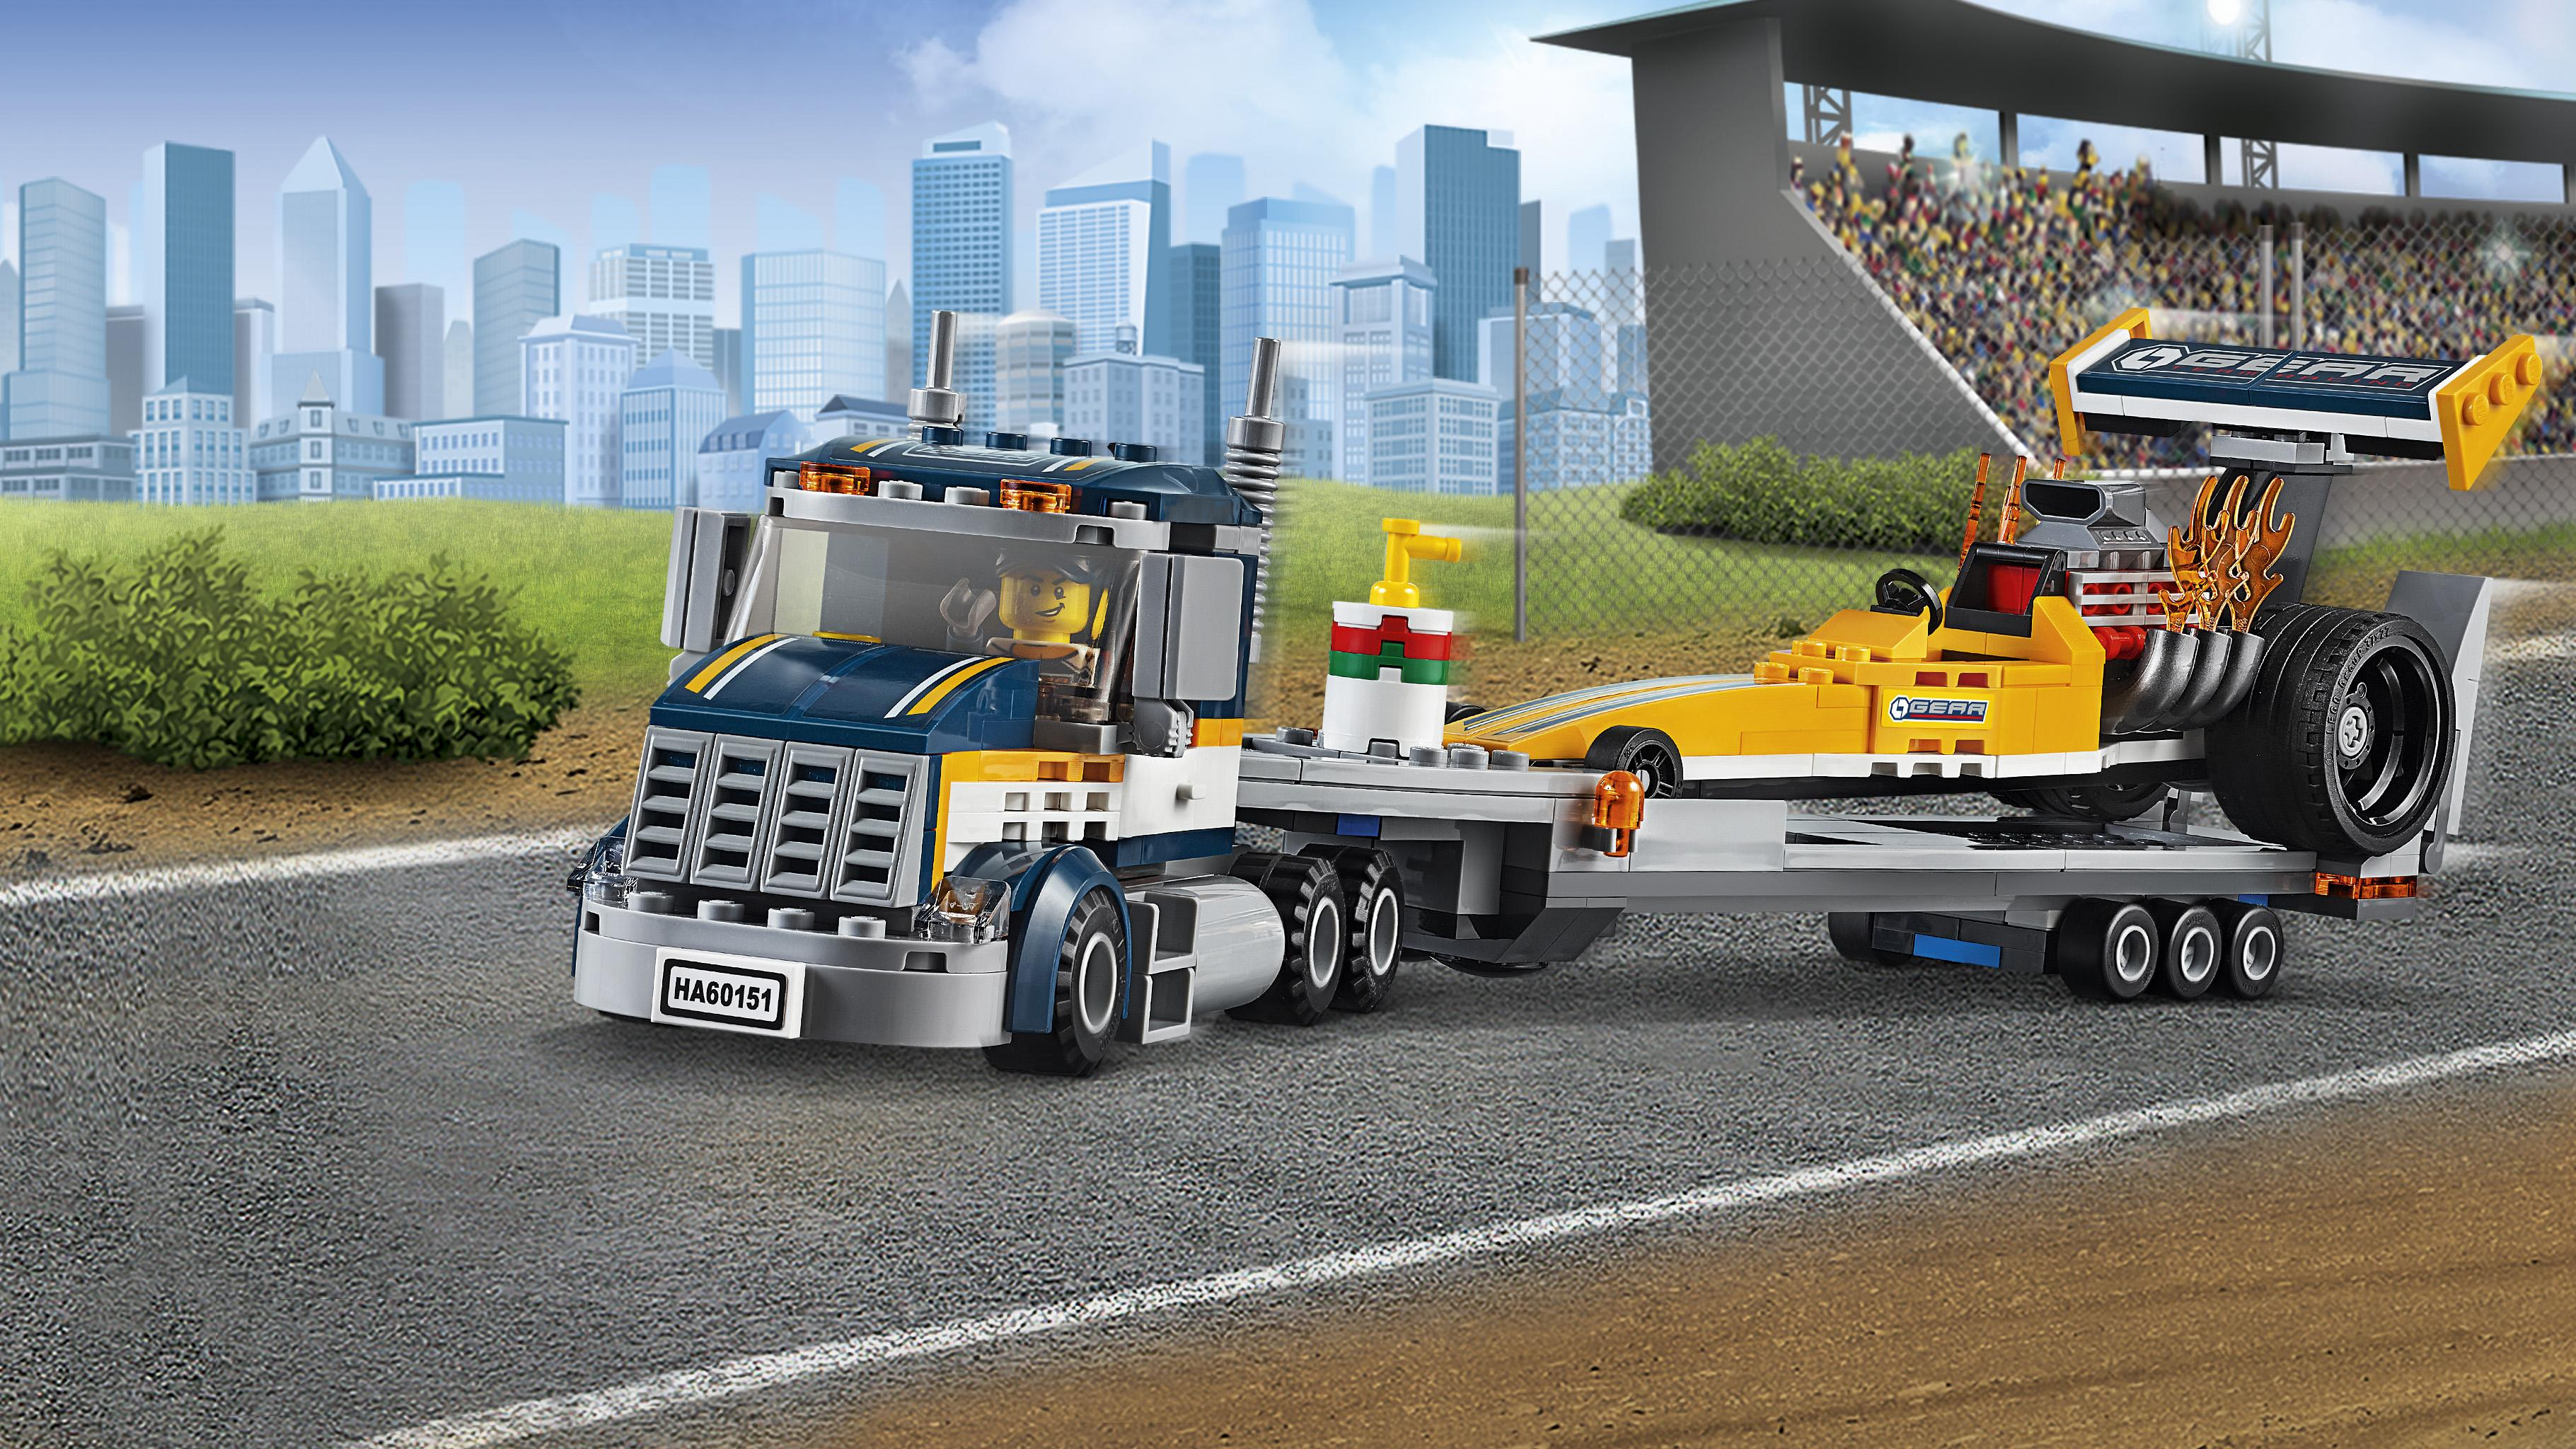 How to build the lego dragster transporter truck